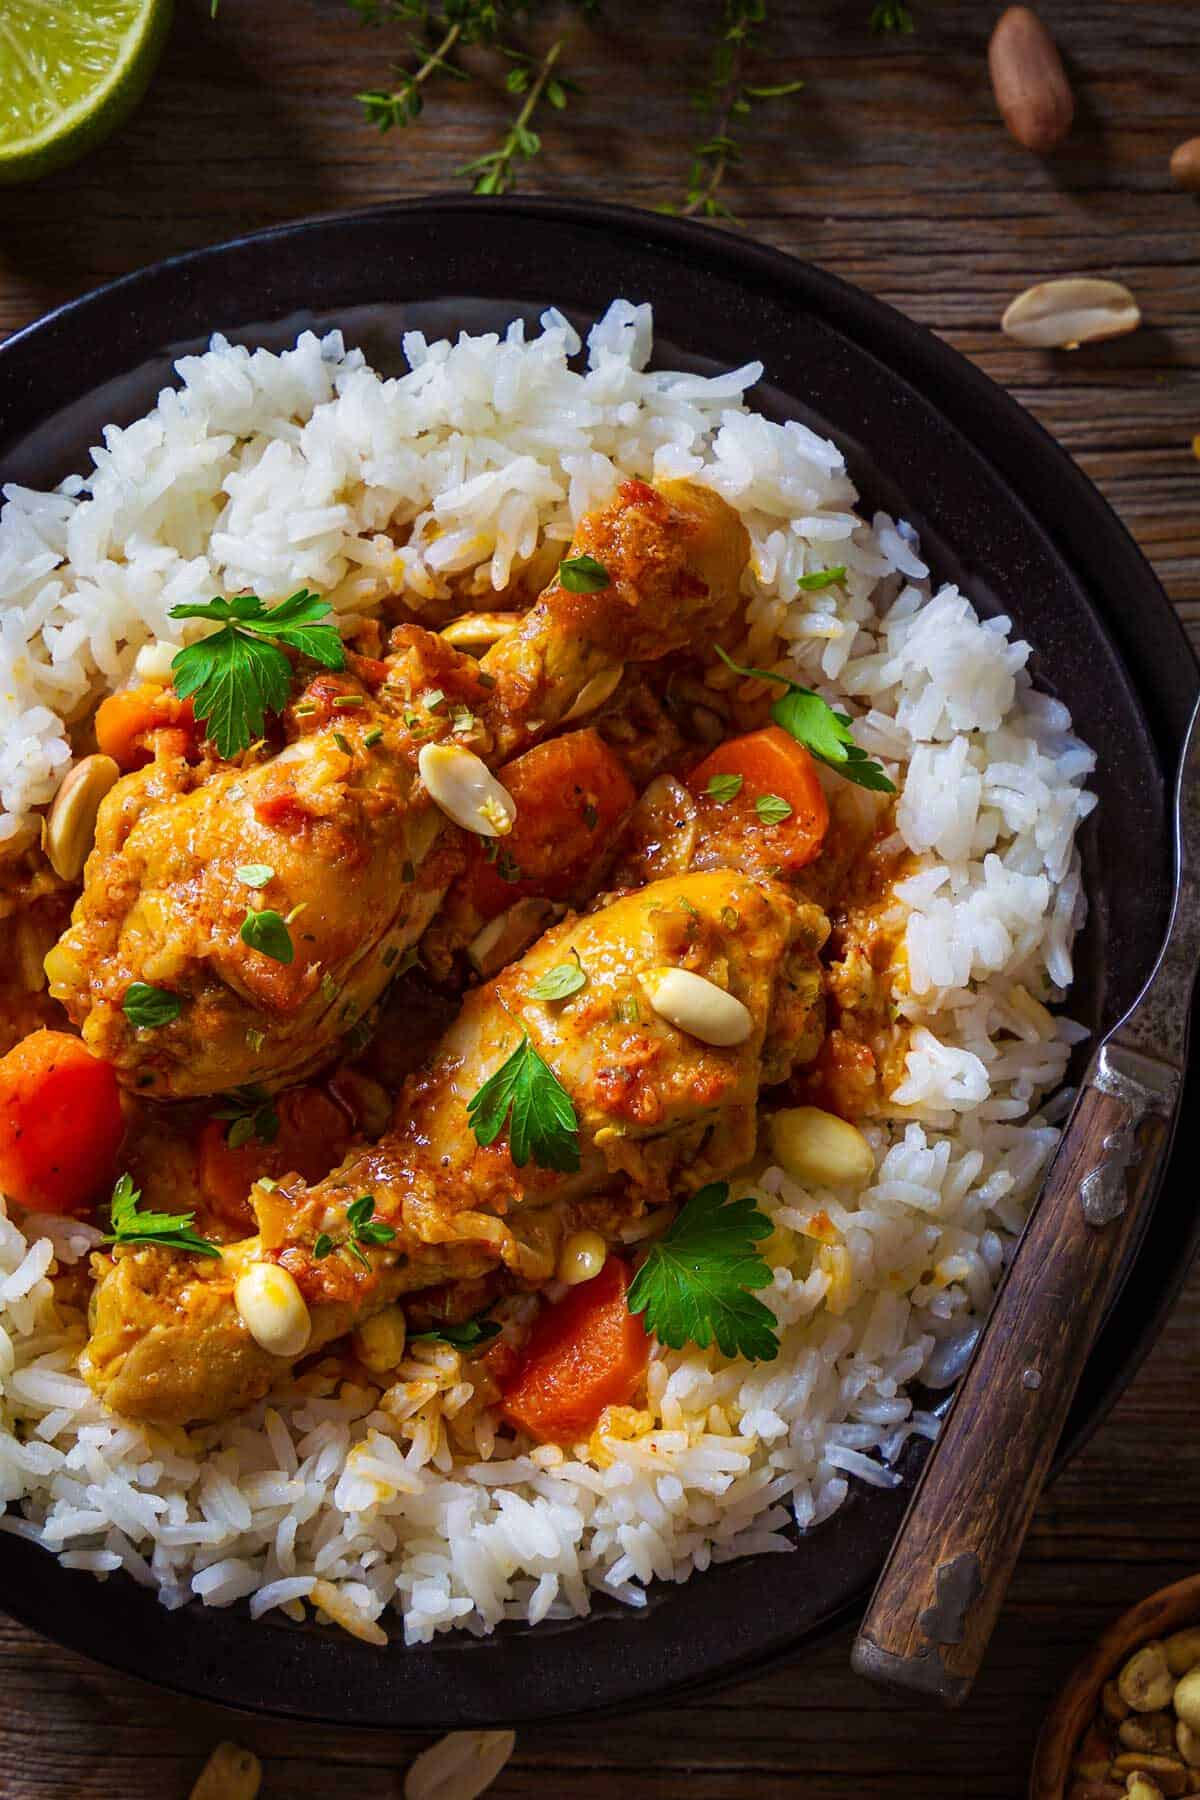 A close up shot of Djerma stew with chicken and peanuts over rice.